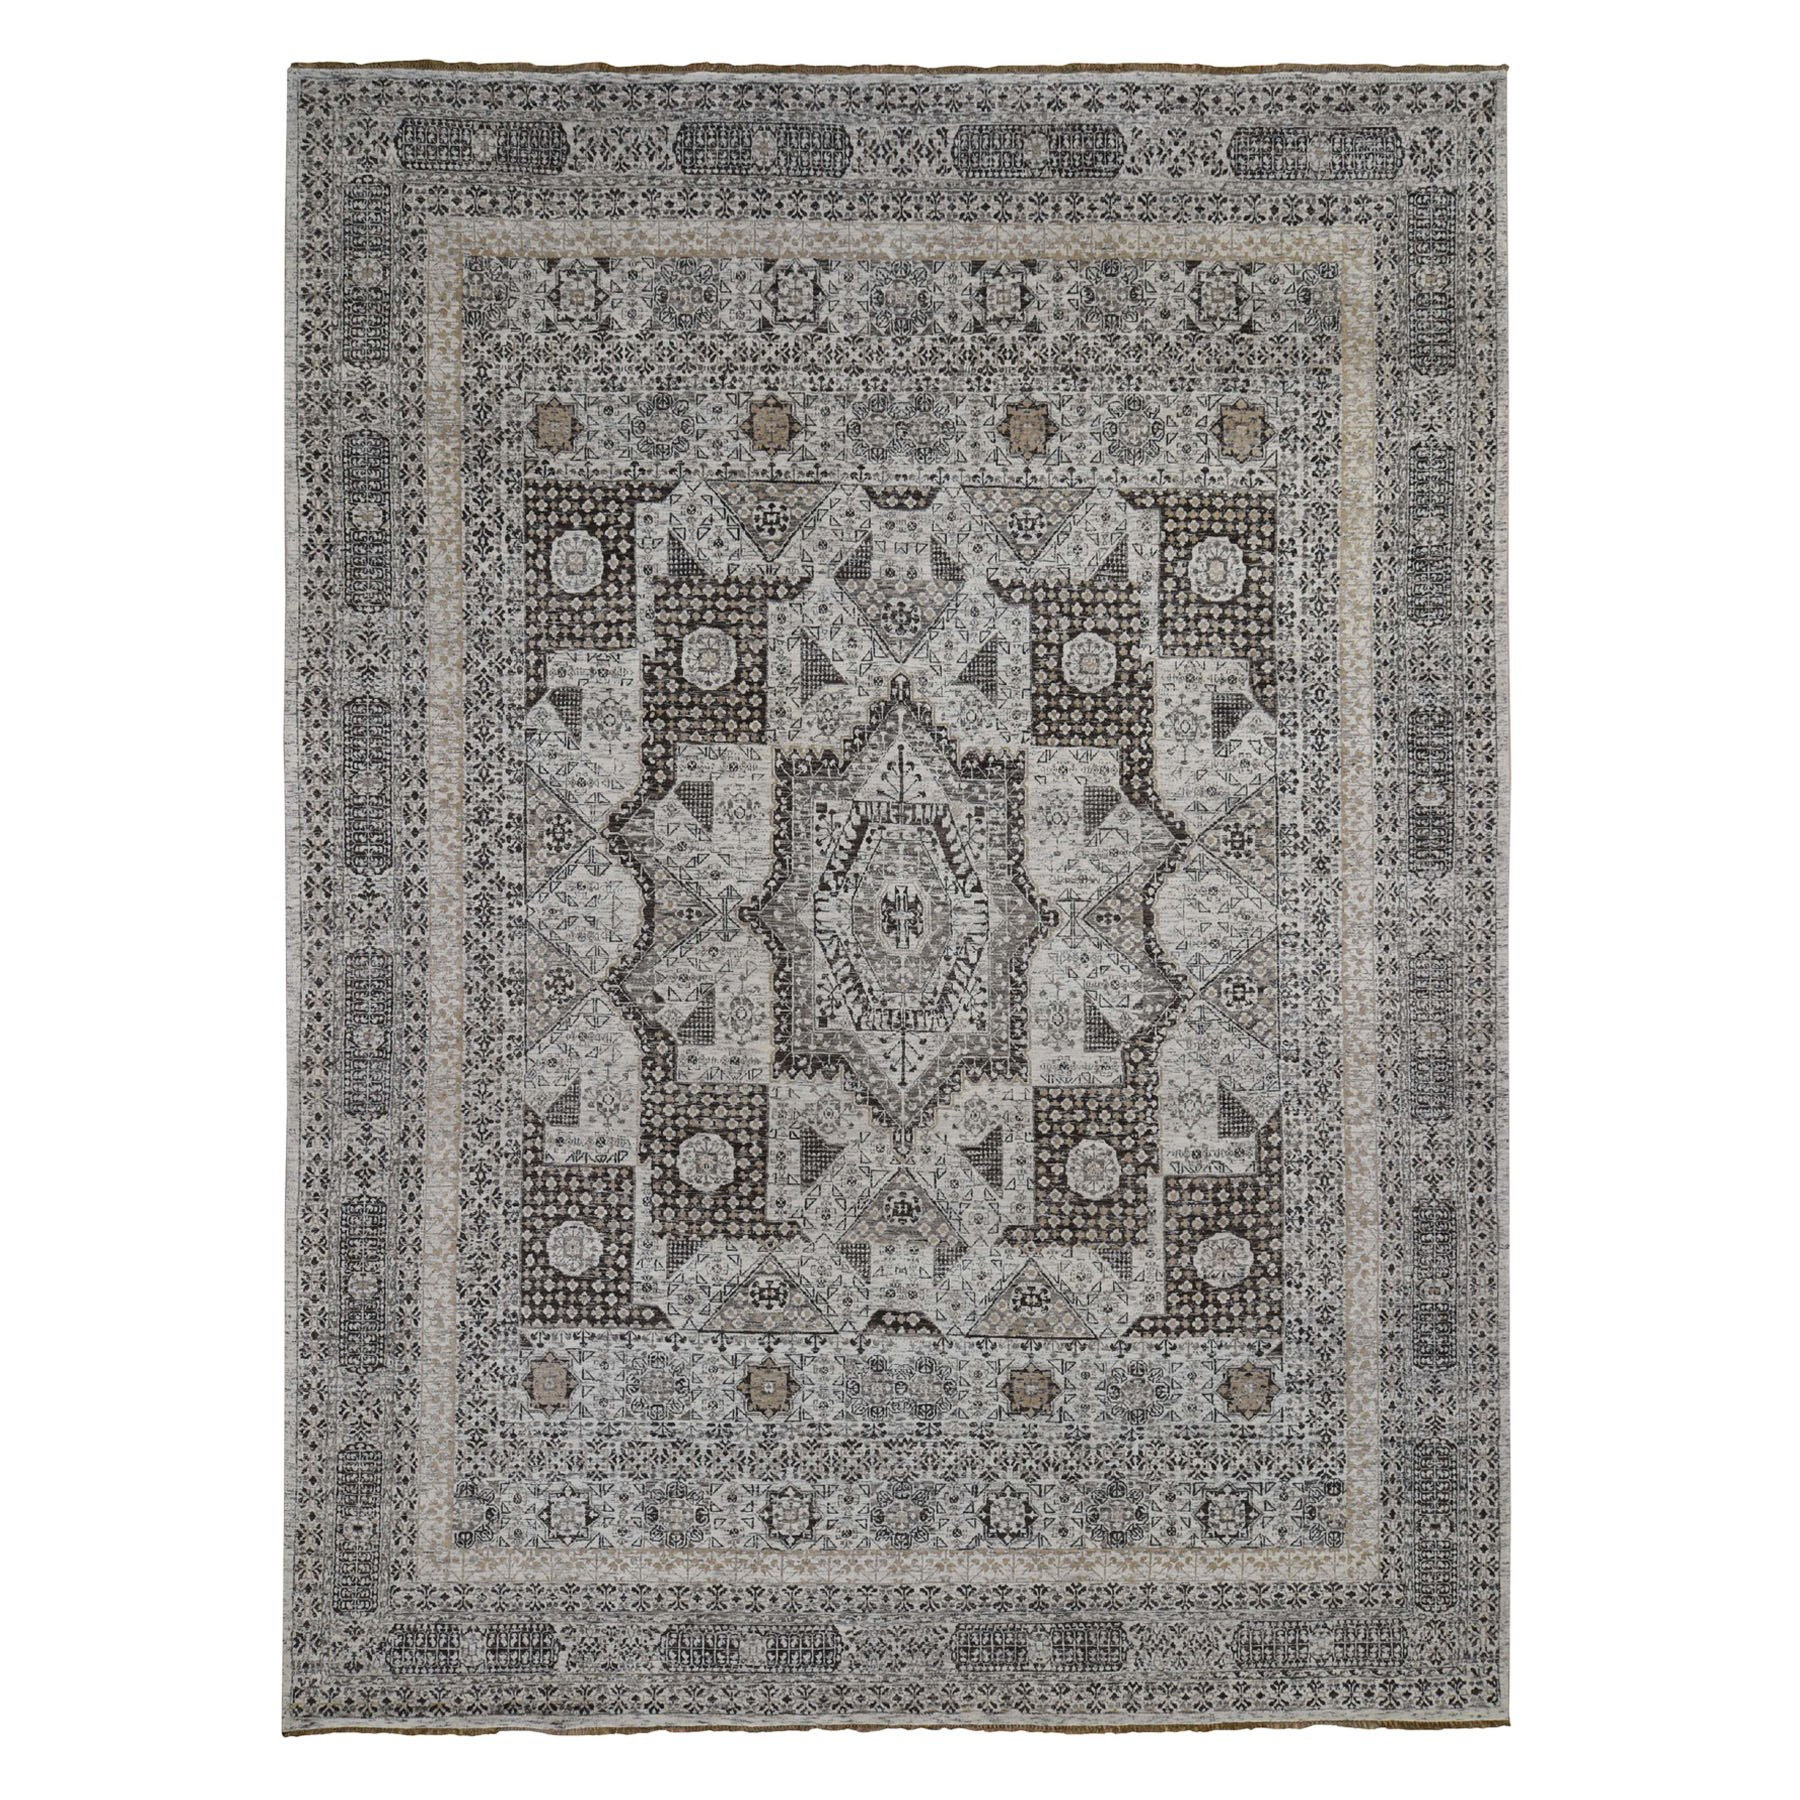 9'X12' Mamluk Design Hand-Knotted Undyed Natural Wool Oriental Rug moad7e9a